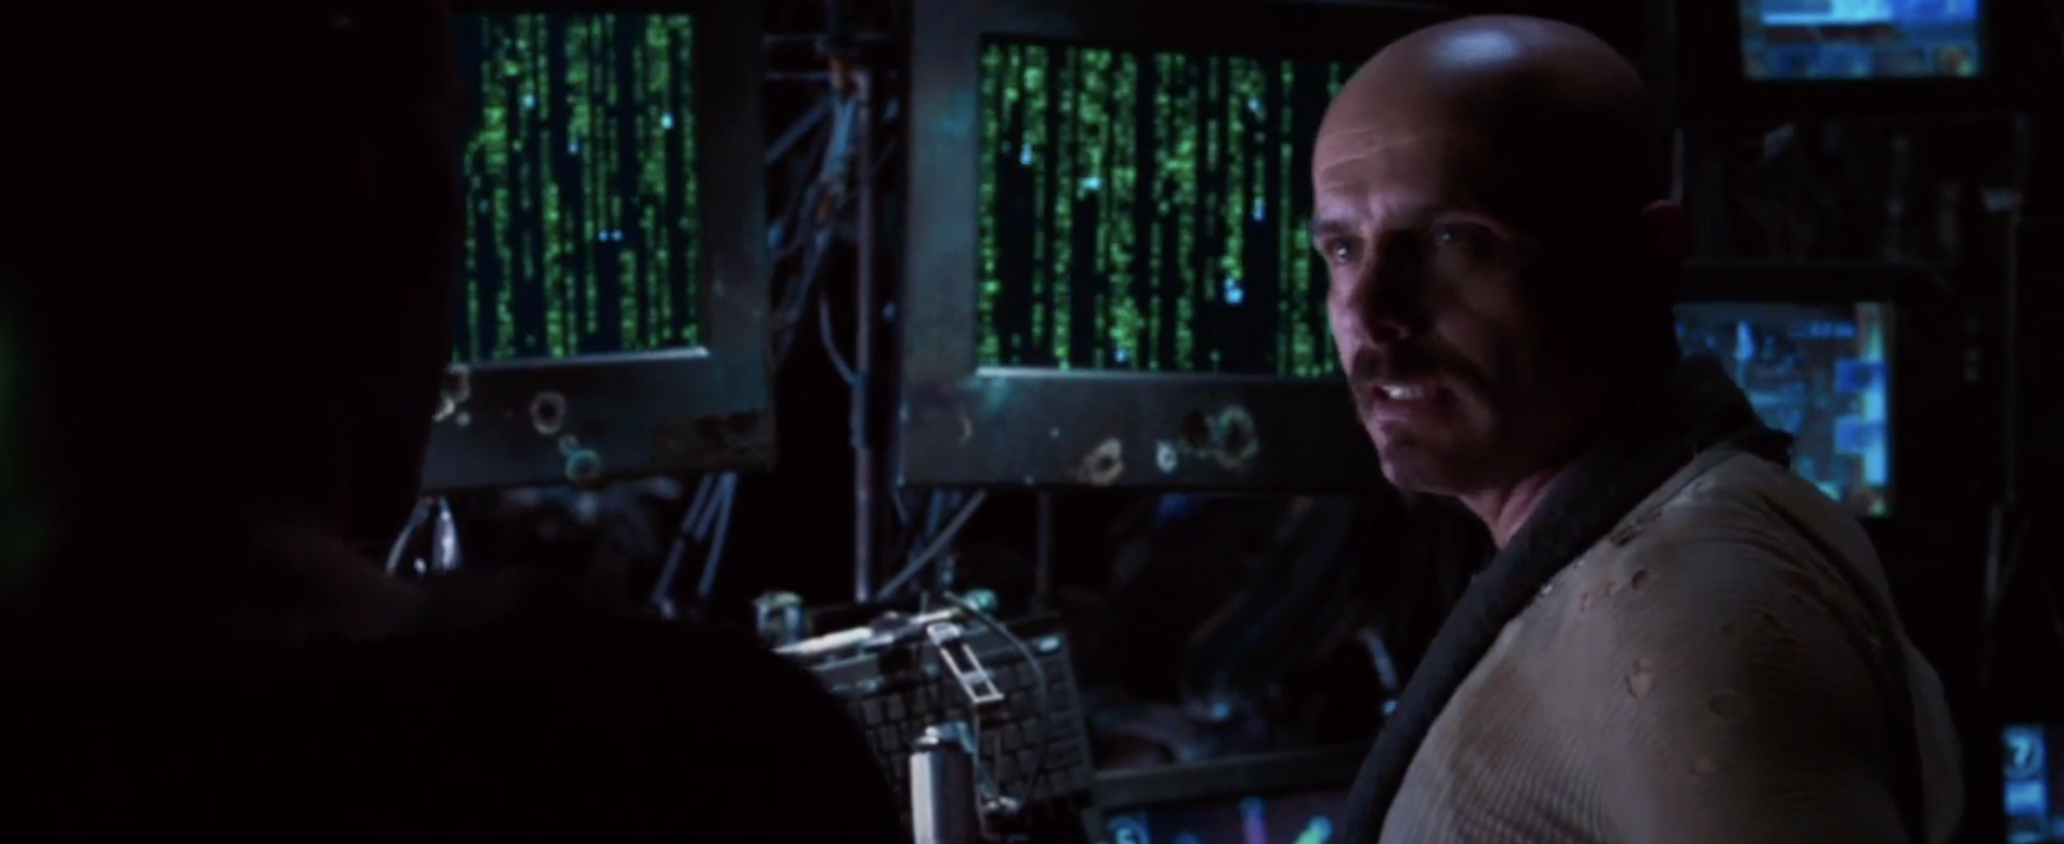 Neo looking at computers with code on them